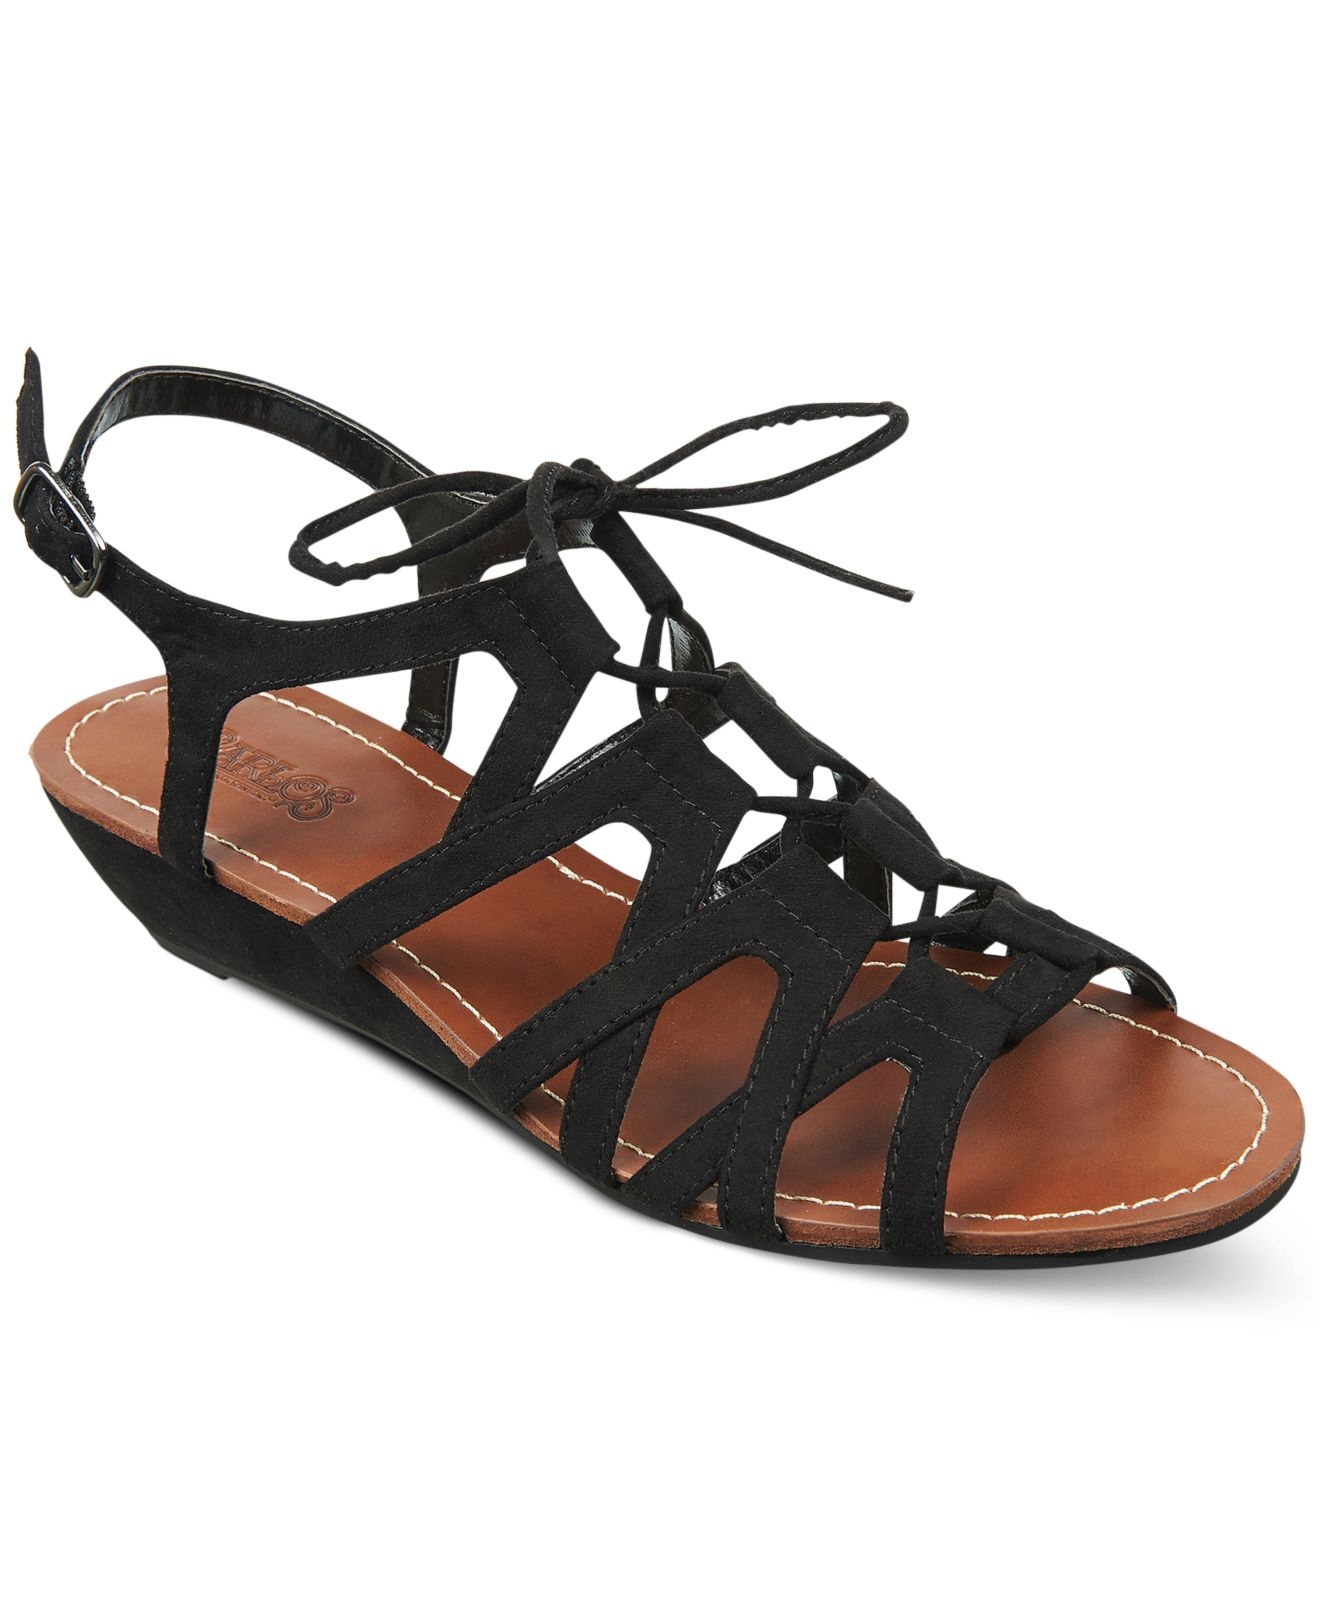 589cc8101ef Gallery. Previously sold at  Macy s · Women s Gladiator Sandals ...